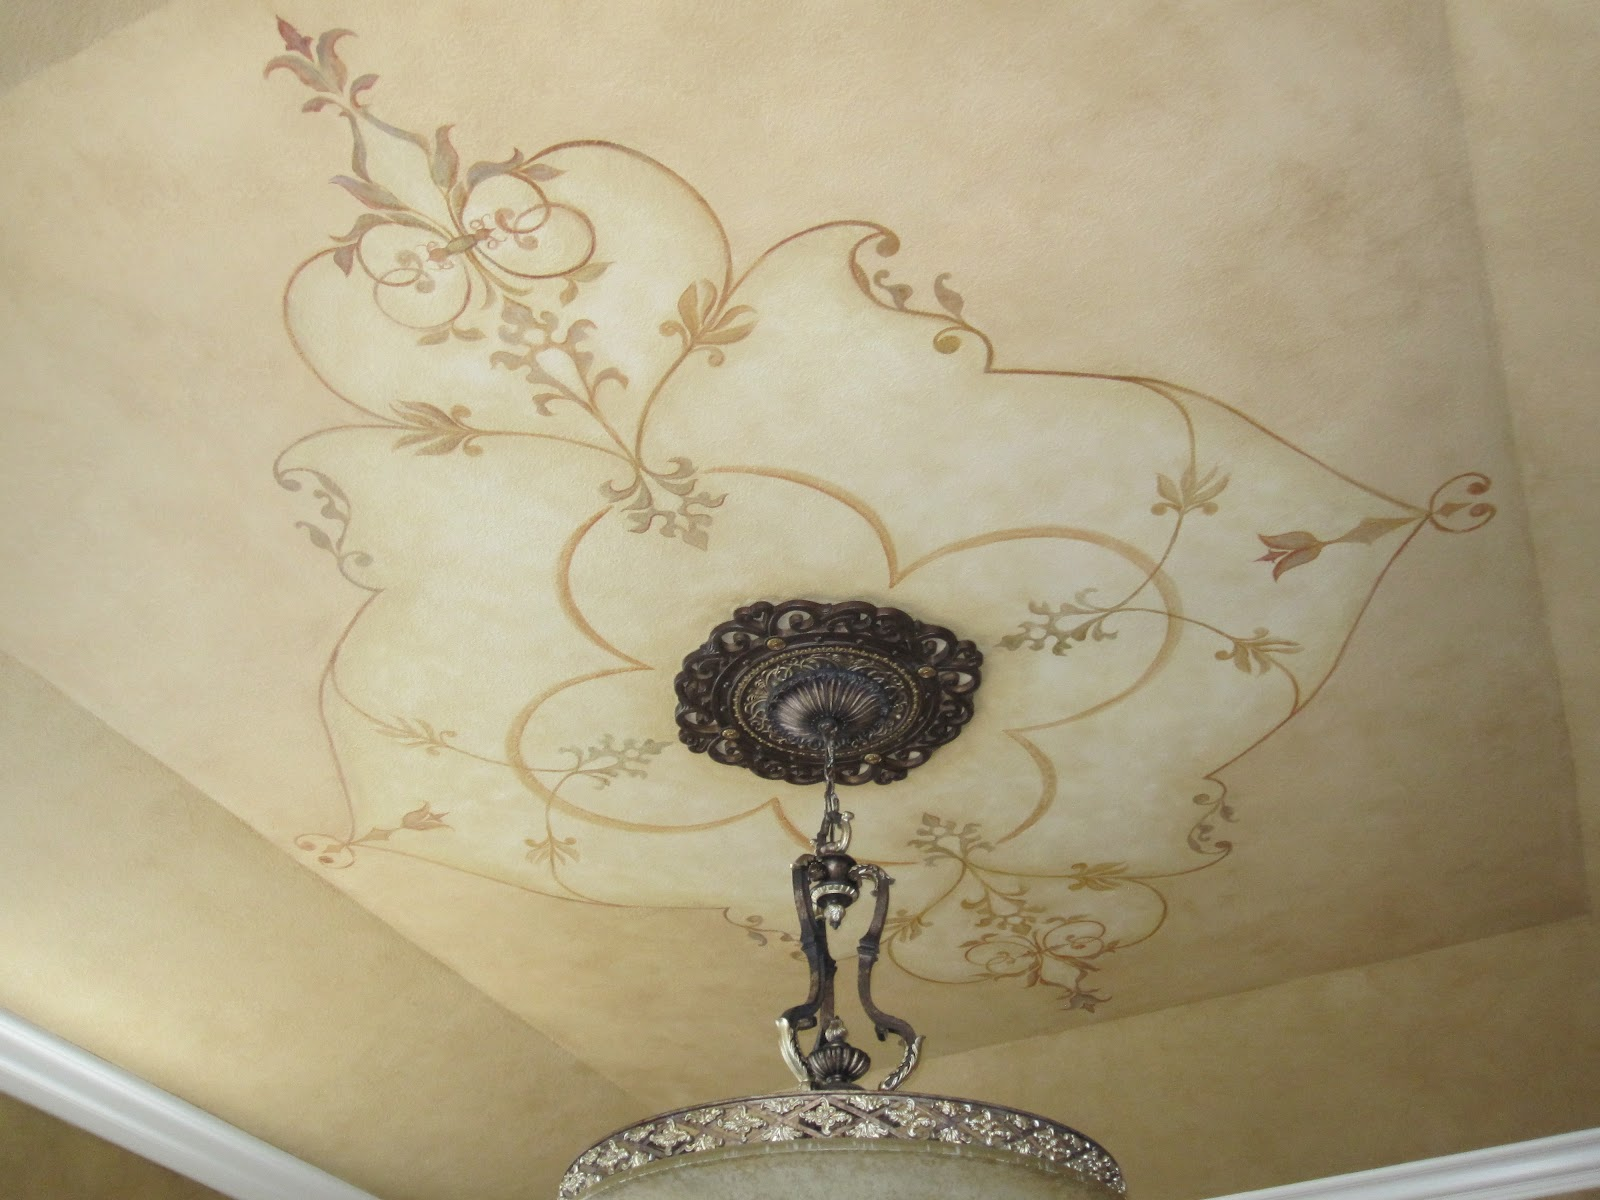 Stormer decorative finishes ceiling mural for Ceiling mural painting techniques